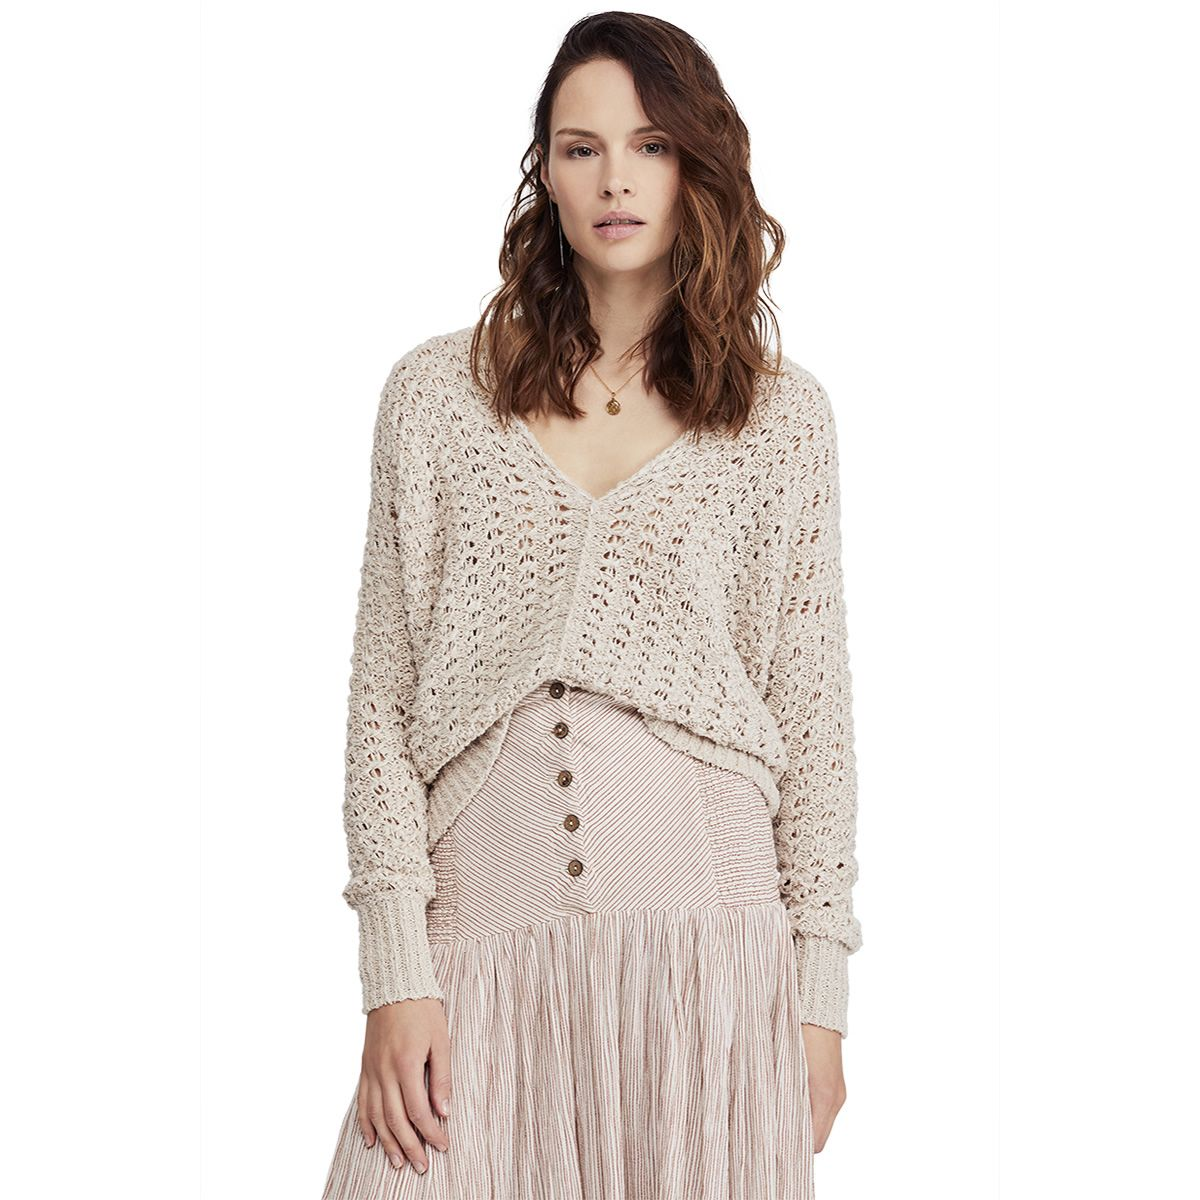 1dd21678953 Free People Clothing - Womens Apparel - Macy s